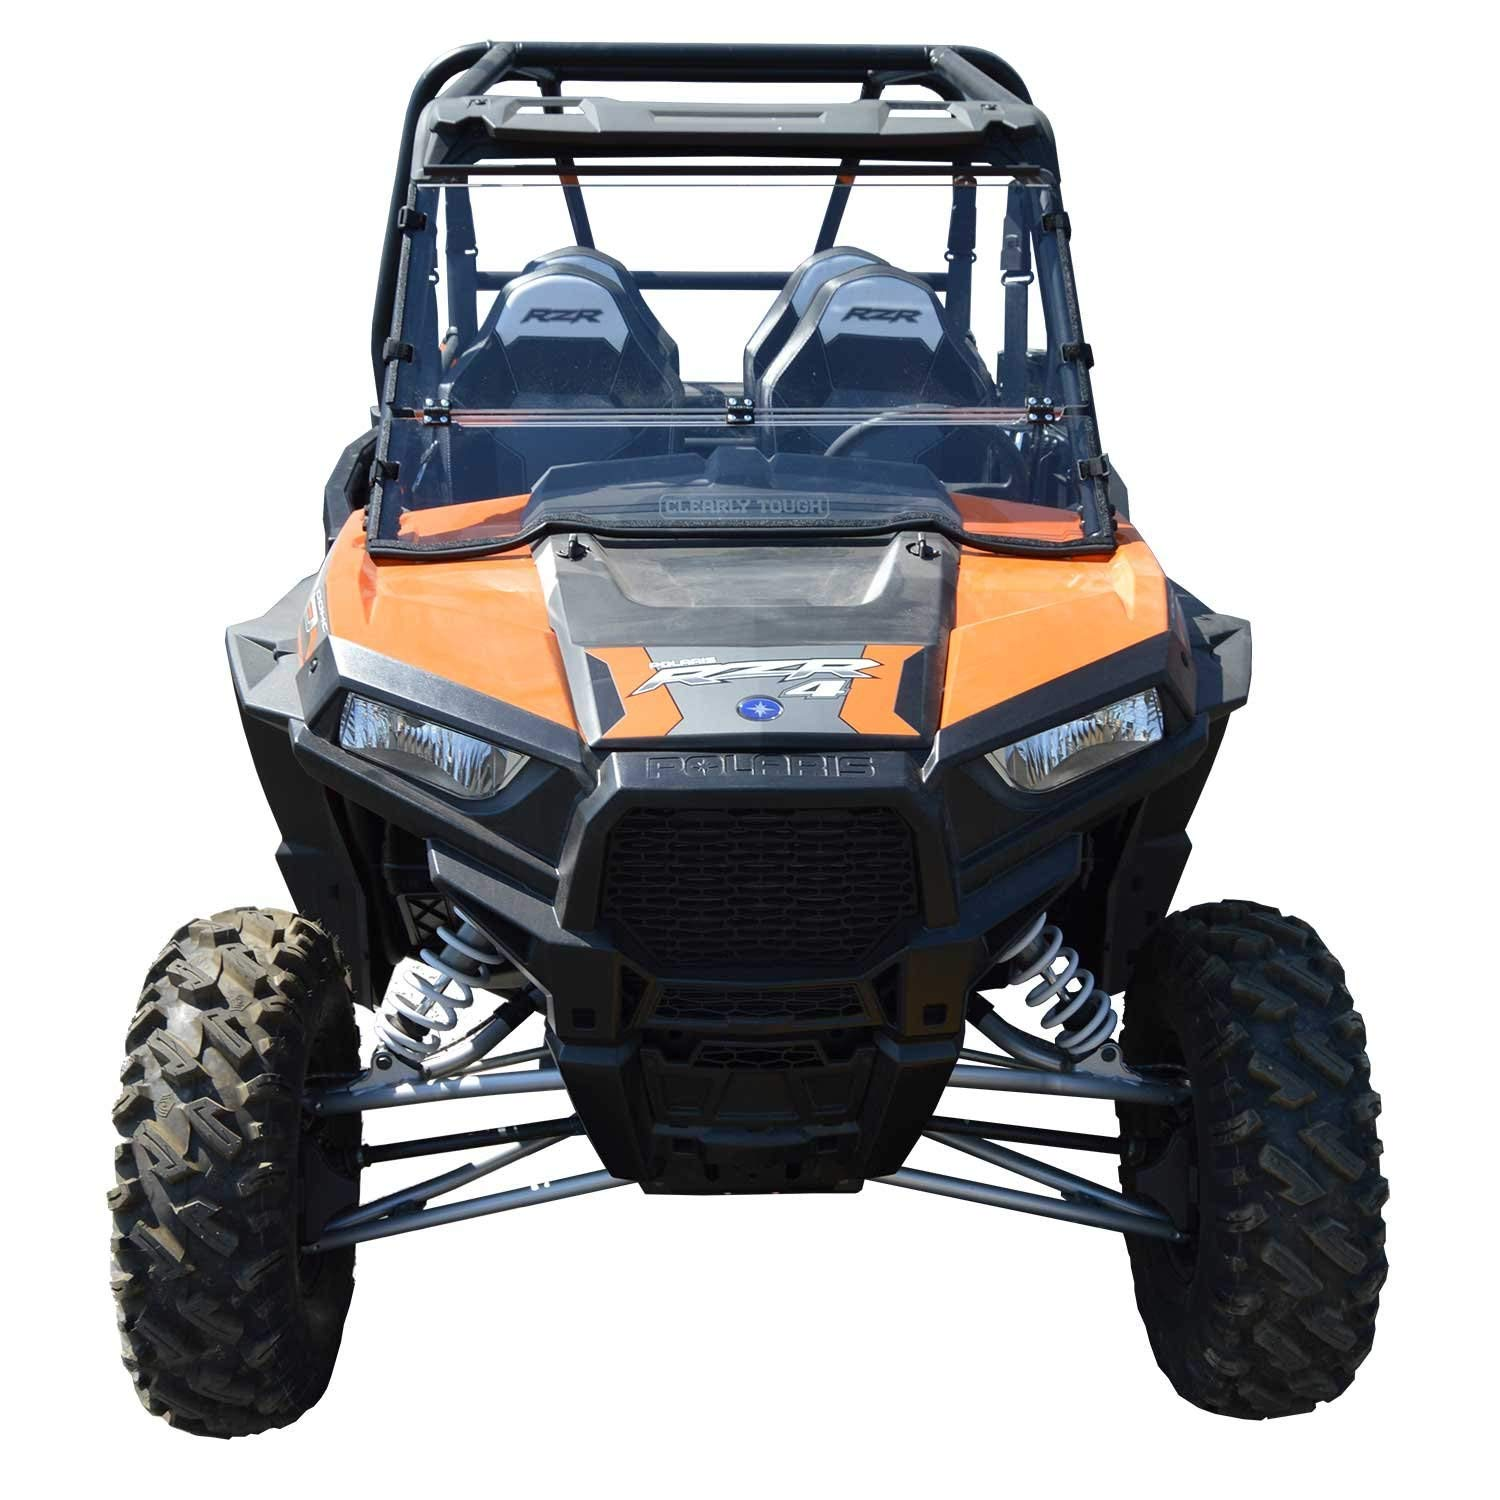 Premium poly w//Hard Coat.Made in America! 2015 /& Newer Models - Full Folding -SCRATCH RESISTANT- The Ultimate in SXS Versatility Polaris RZR 900 Windshield Easy On or Off